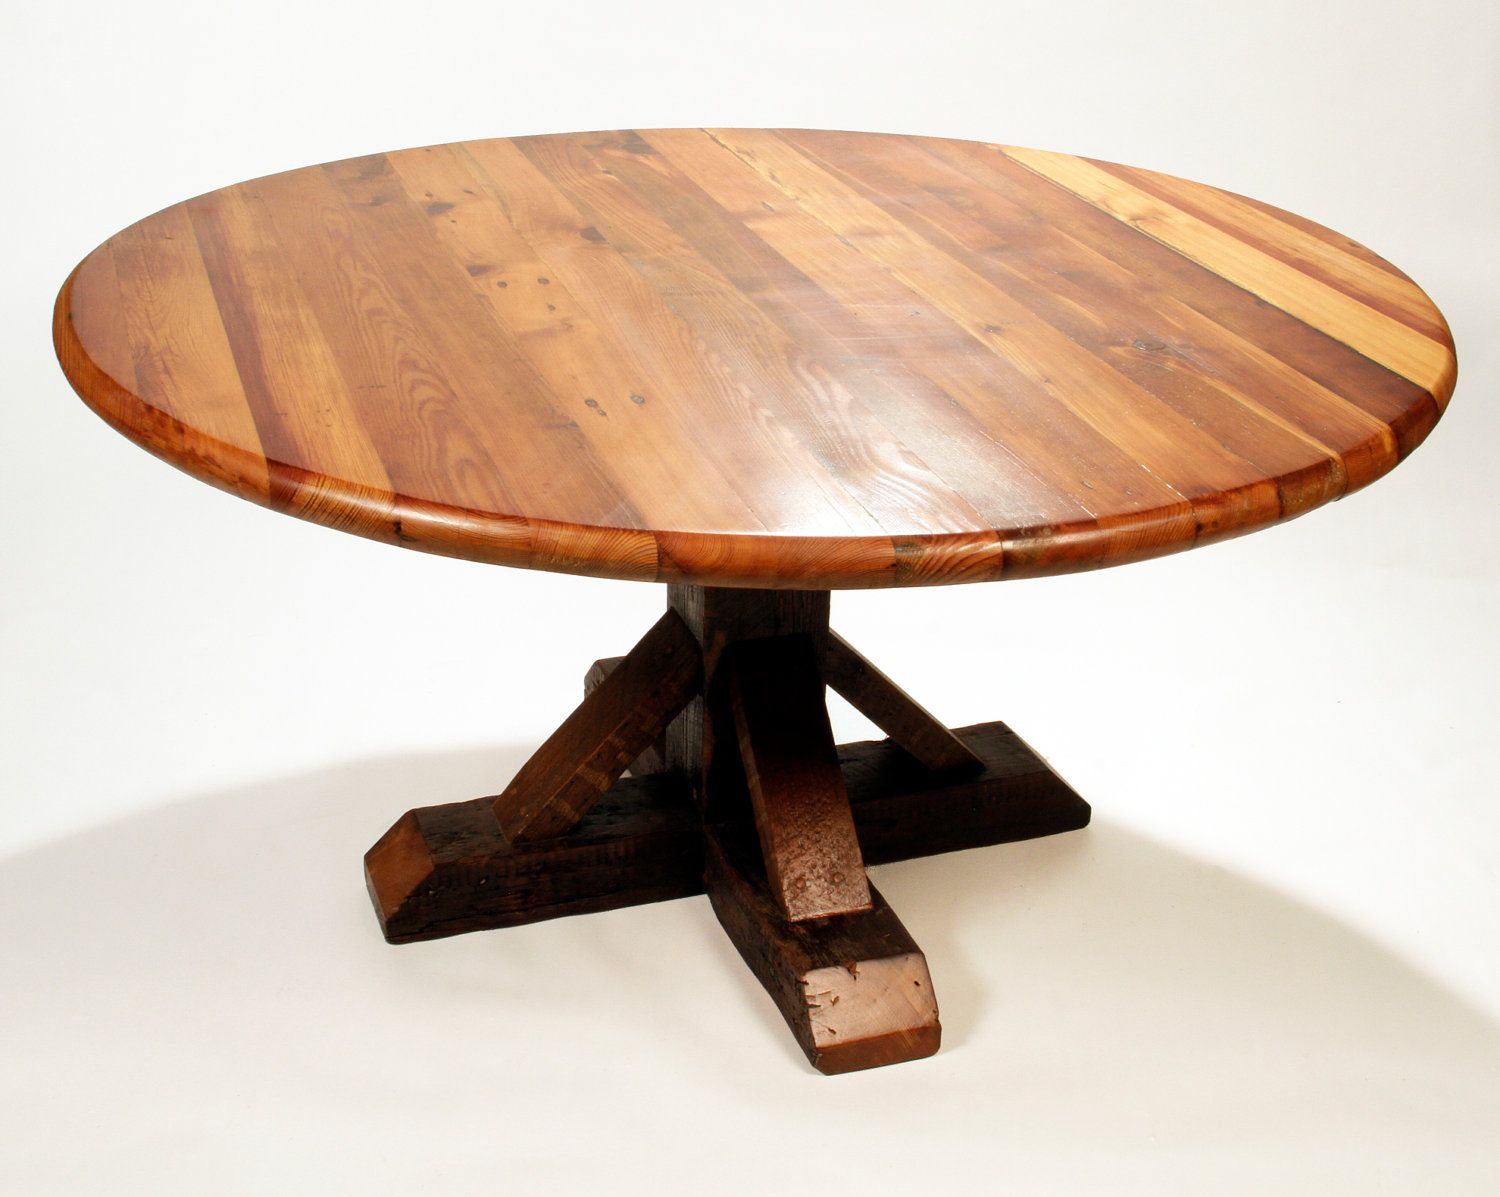 rustic round kitchen table Reclaimed Wood Dining Table Round Antique Heart Pine reclaimed sustainable eco friendly modern rustic